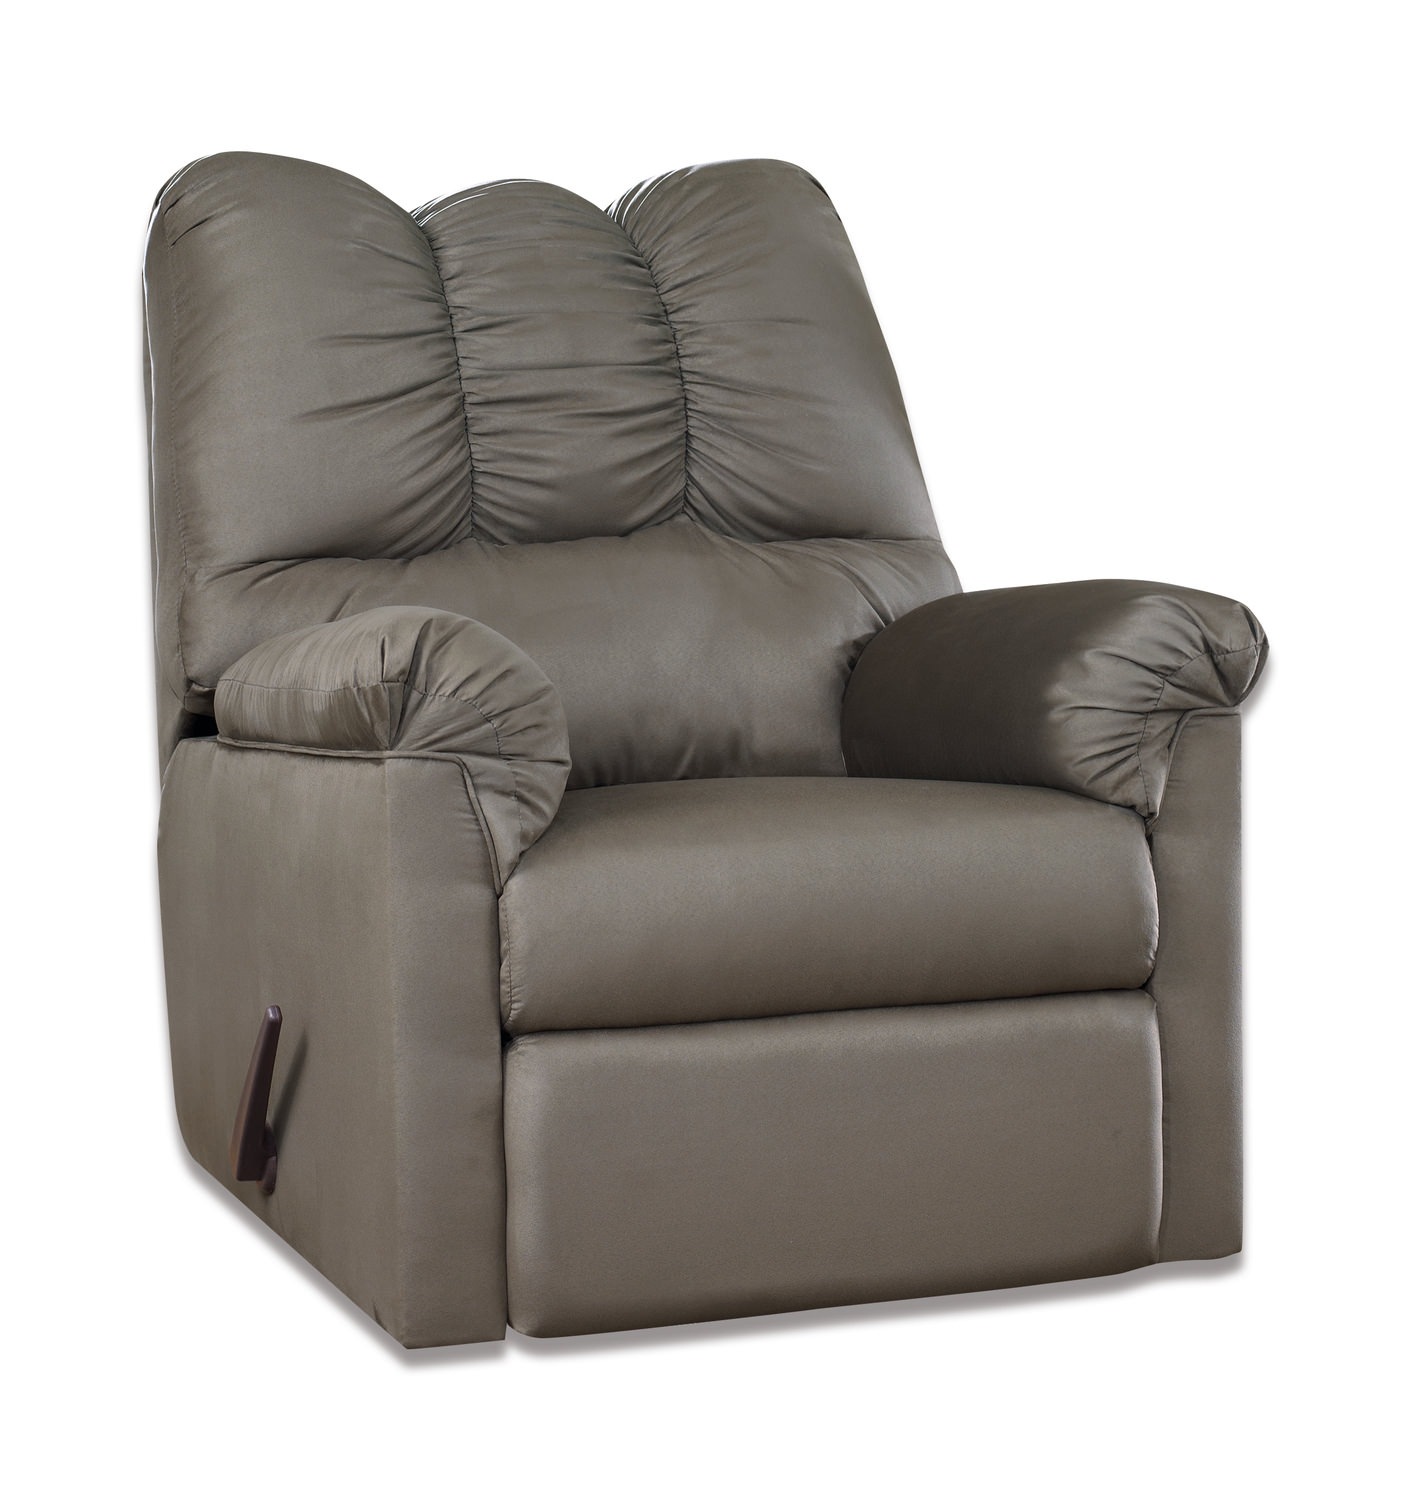 Recliners – Leather, Rocker & Swivel – Hom Furniture With Regard To Theo Ii Swivel Chairs (View 2 of 25)